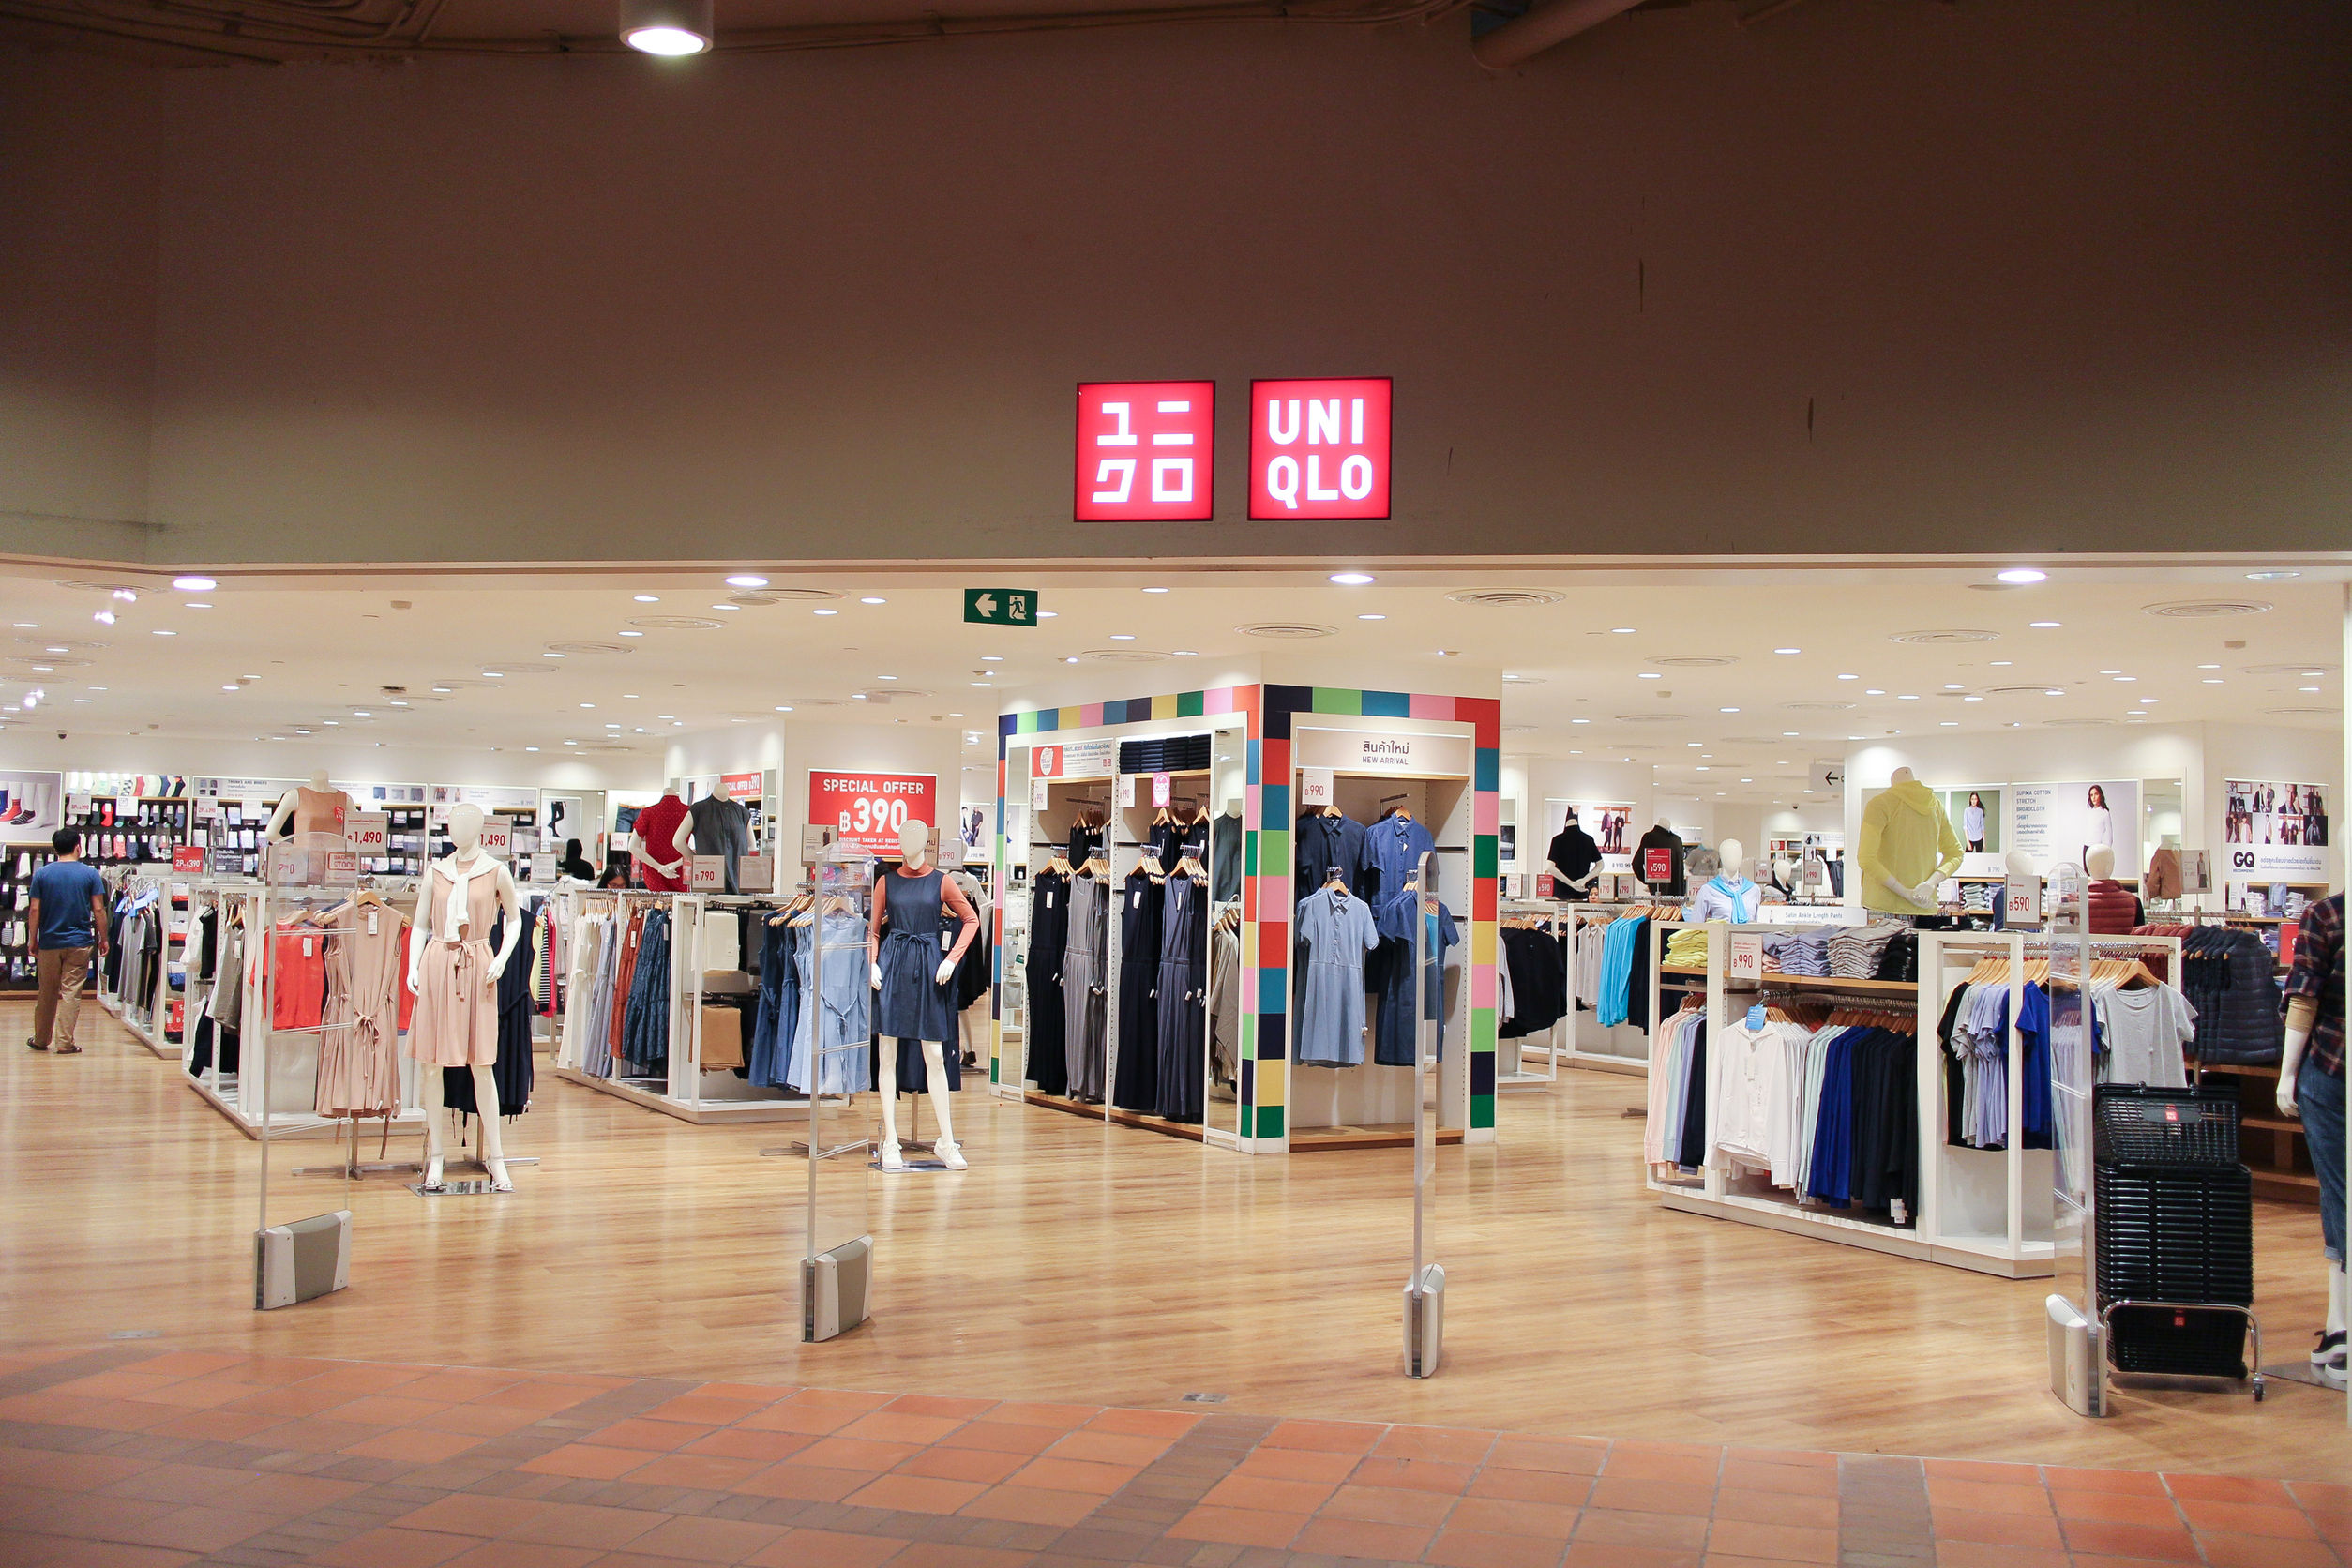 ab8624fe377 Uniqlo  looking forward  to opportunity of opening first NZ store - NZ  Herald